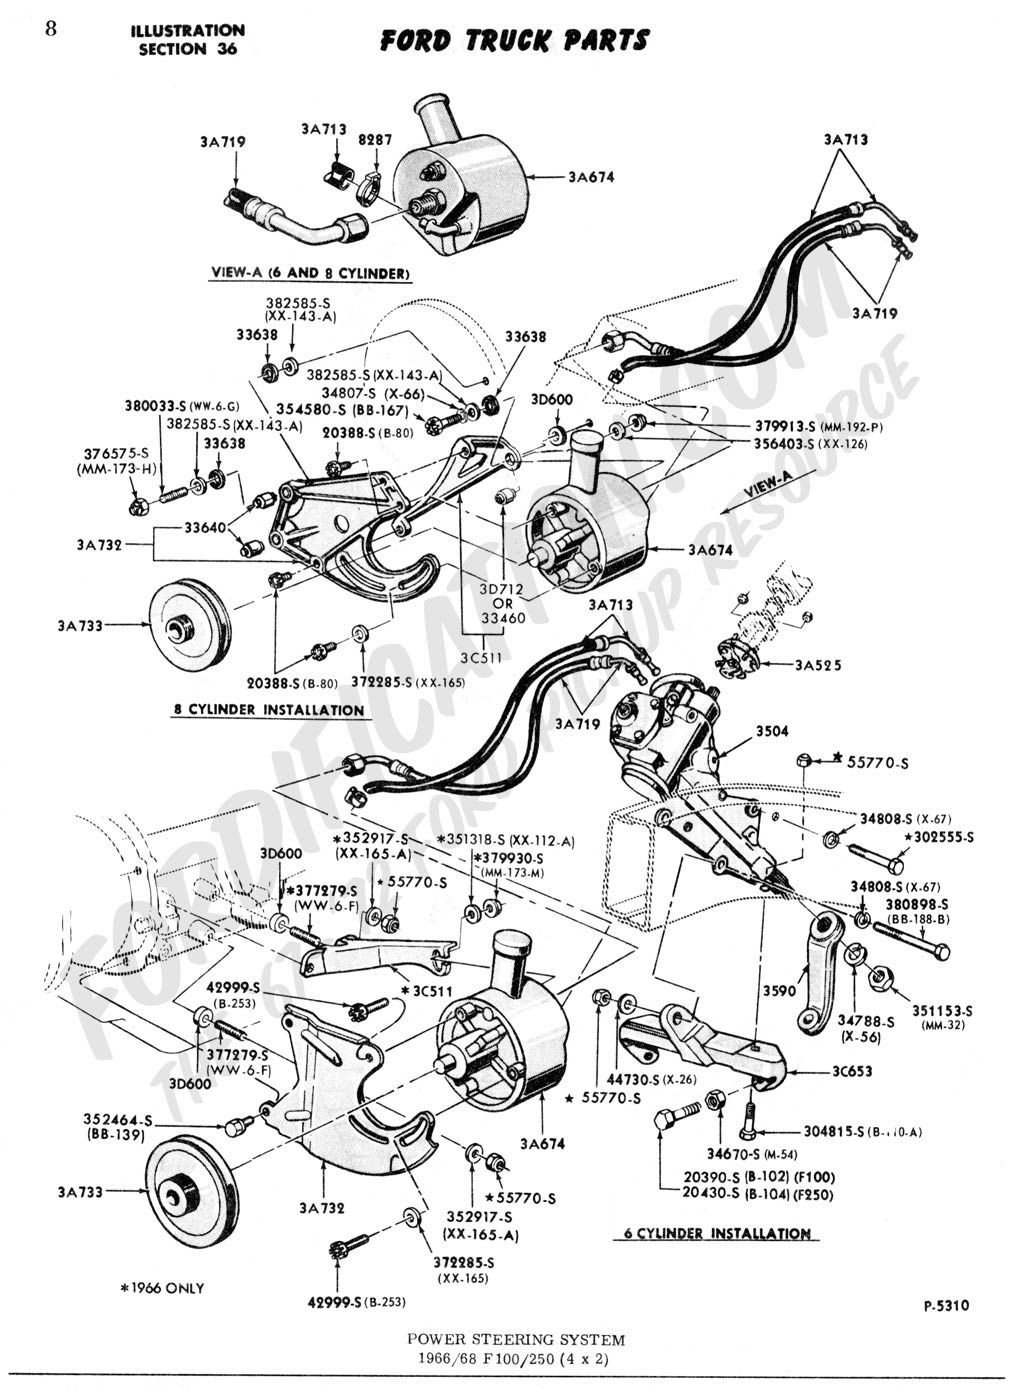 1977 ford truck steering diagram power steering system [ 1024 x 1389 Pixel ]